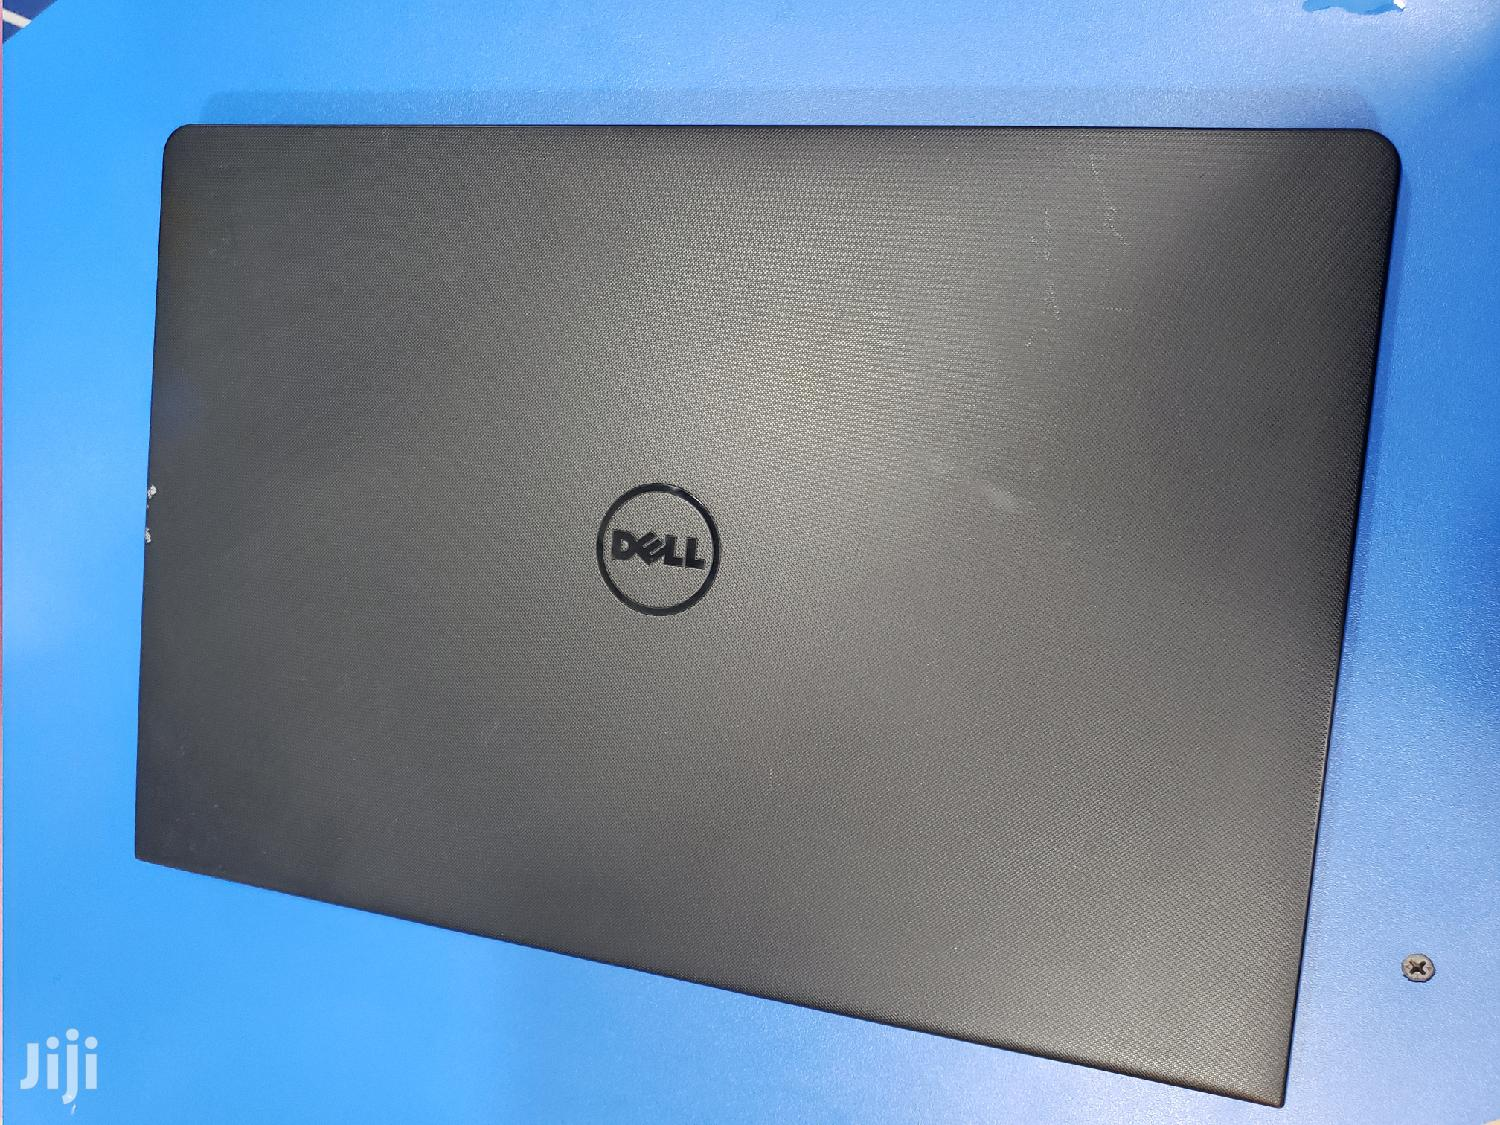 Laptop Dell Inspiron 15 3000 4GB Intel Core I3 HDD 500GB | Laptops & Computers for sale in Kampala, Central Region, Uganda